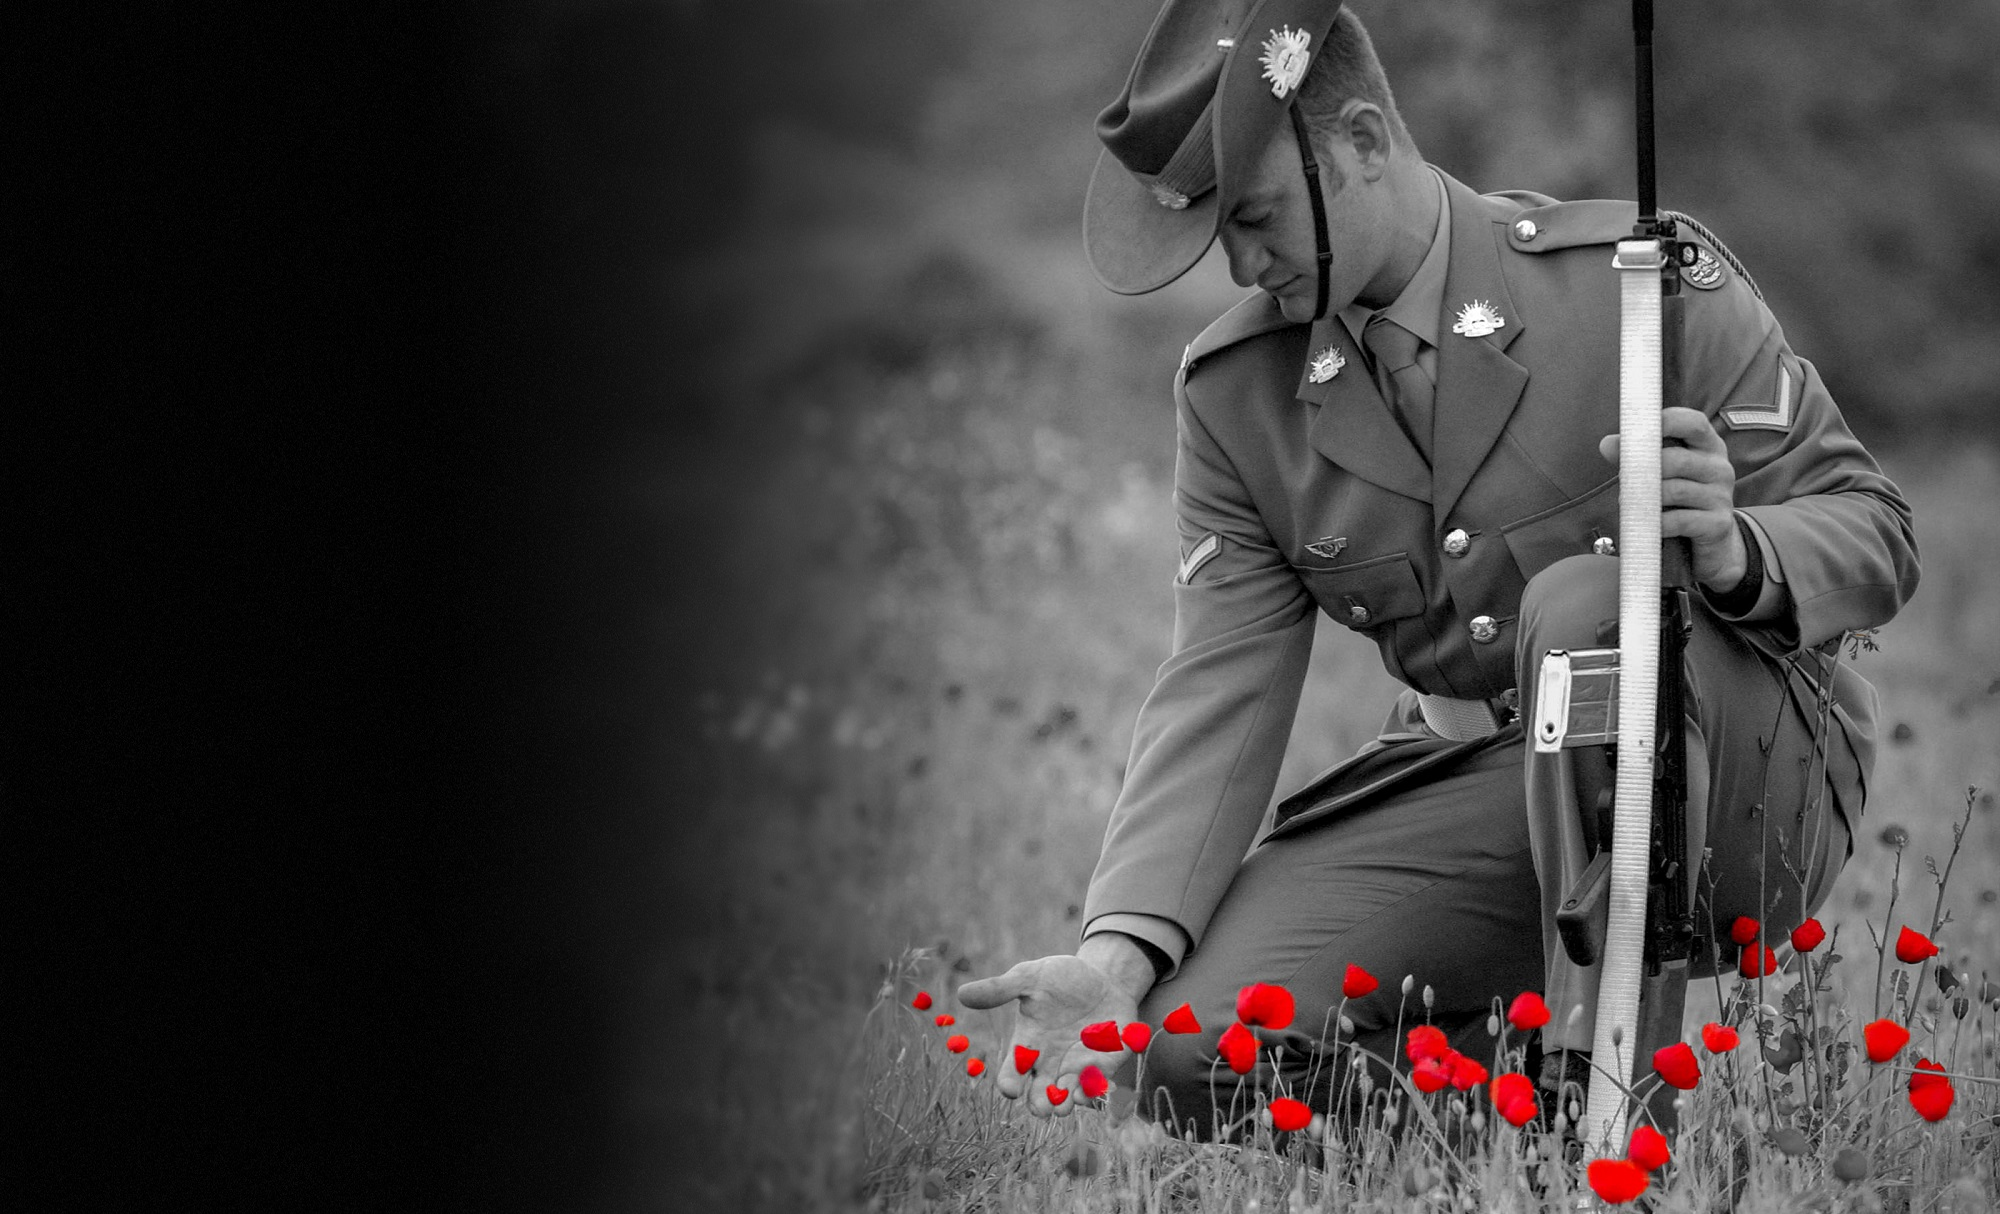 Solider kneeling in a field of red poppies